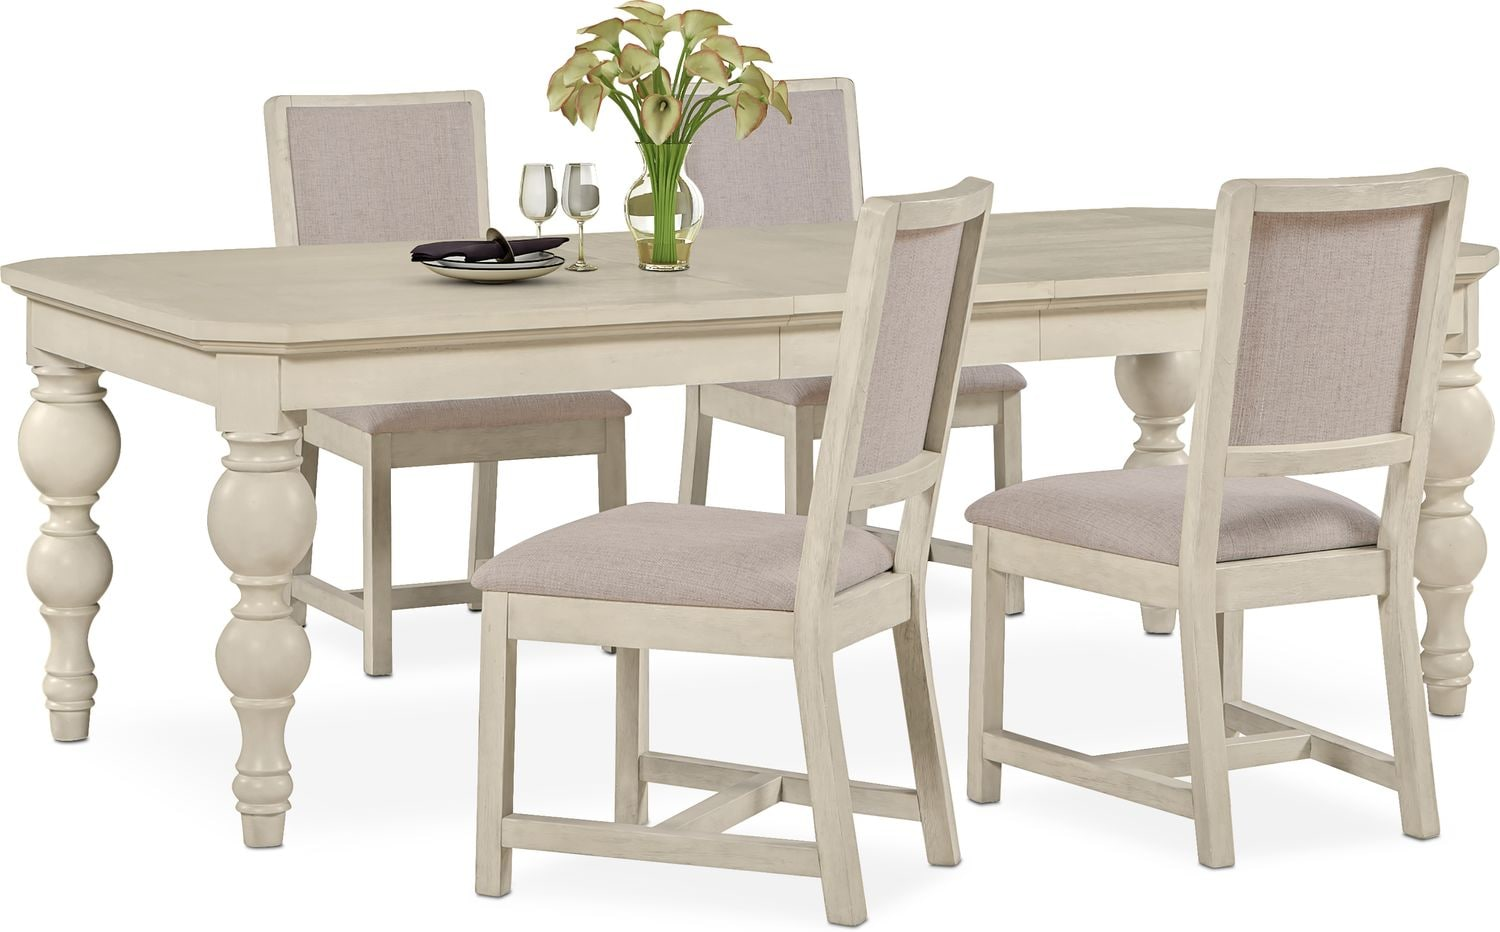 Dining Room Furniture - Gristmill Dining Table and 4 Upholstered Side Chairs - Linen